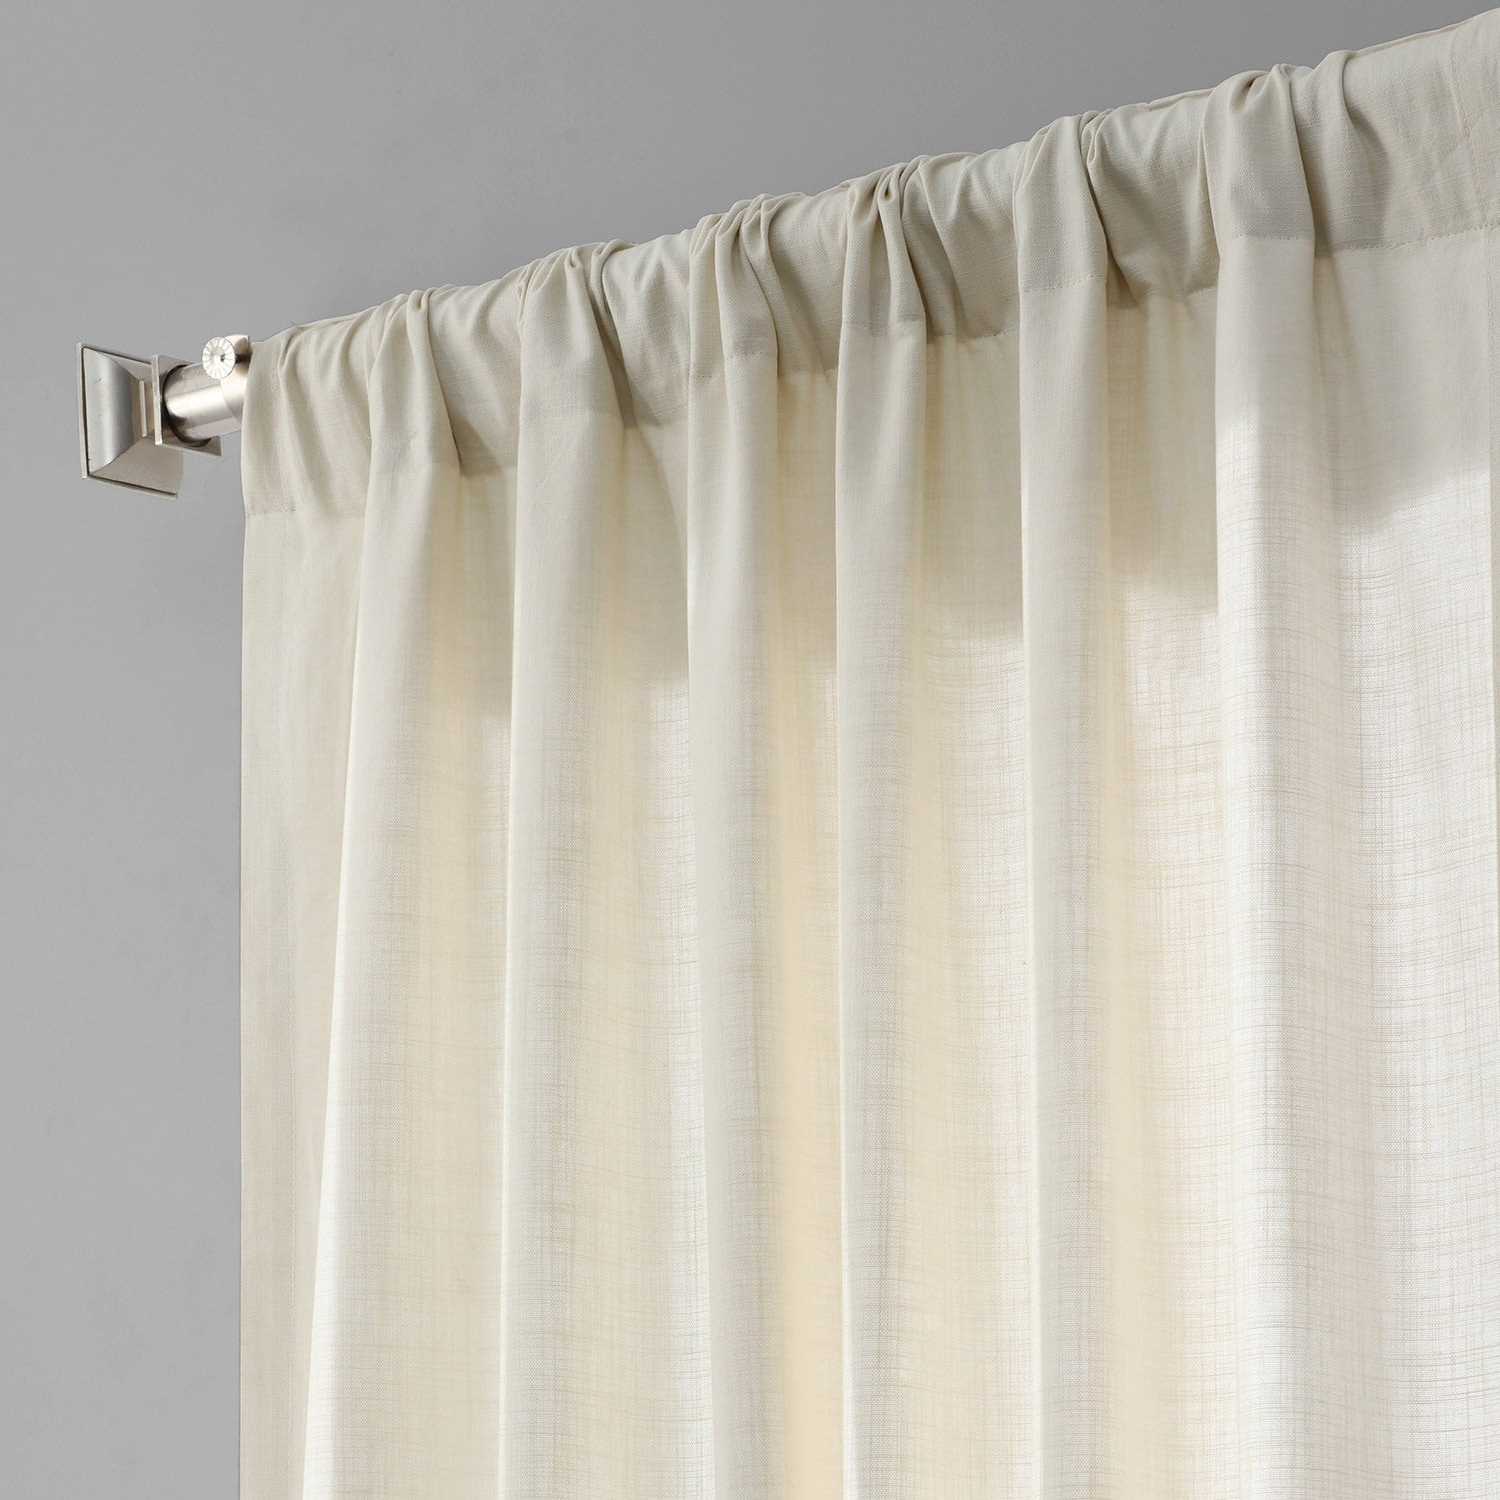 Most Recent Exclusive Fabrics Solid Country Cotton Linen Weave Curtain Panel With Solid Country Cotton Linen Weave Curtain Panels (View 9 of 20)